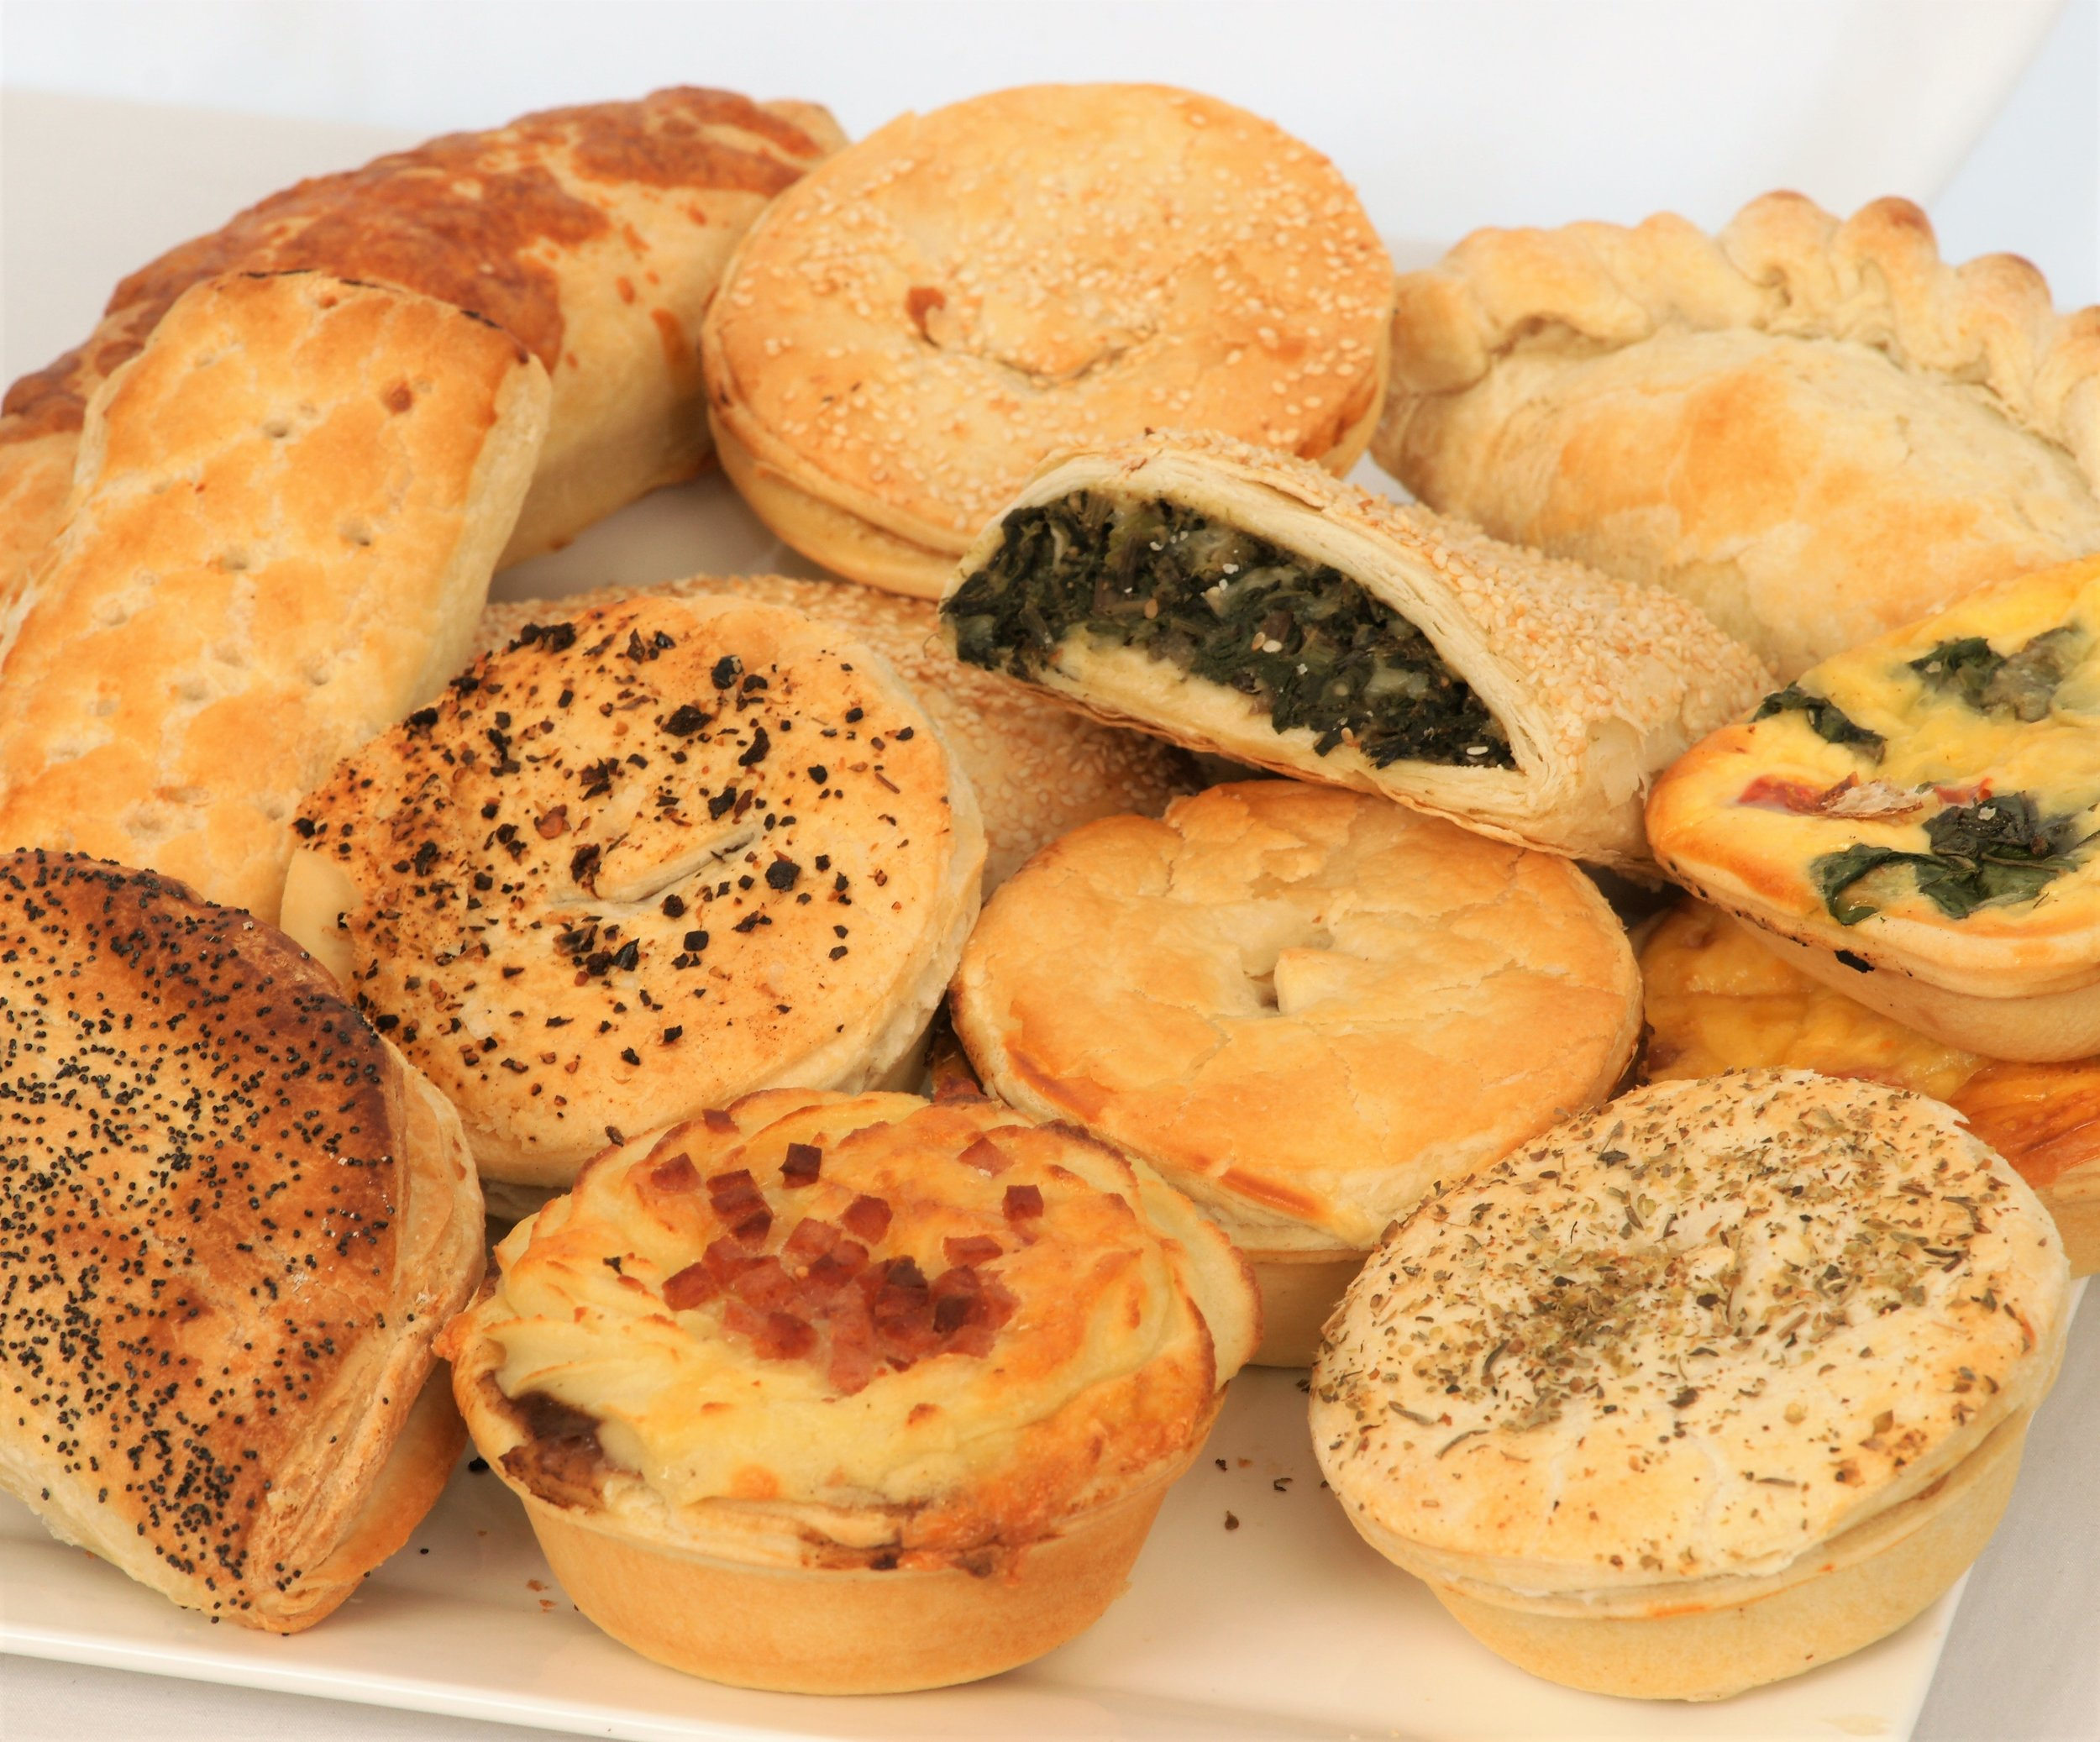 Products Pastry Goods Photo.JPG